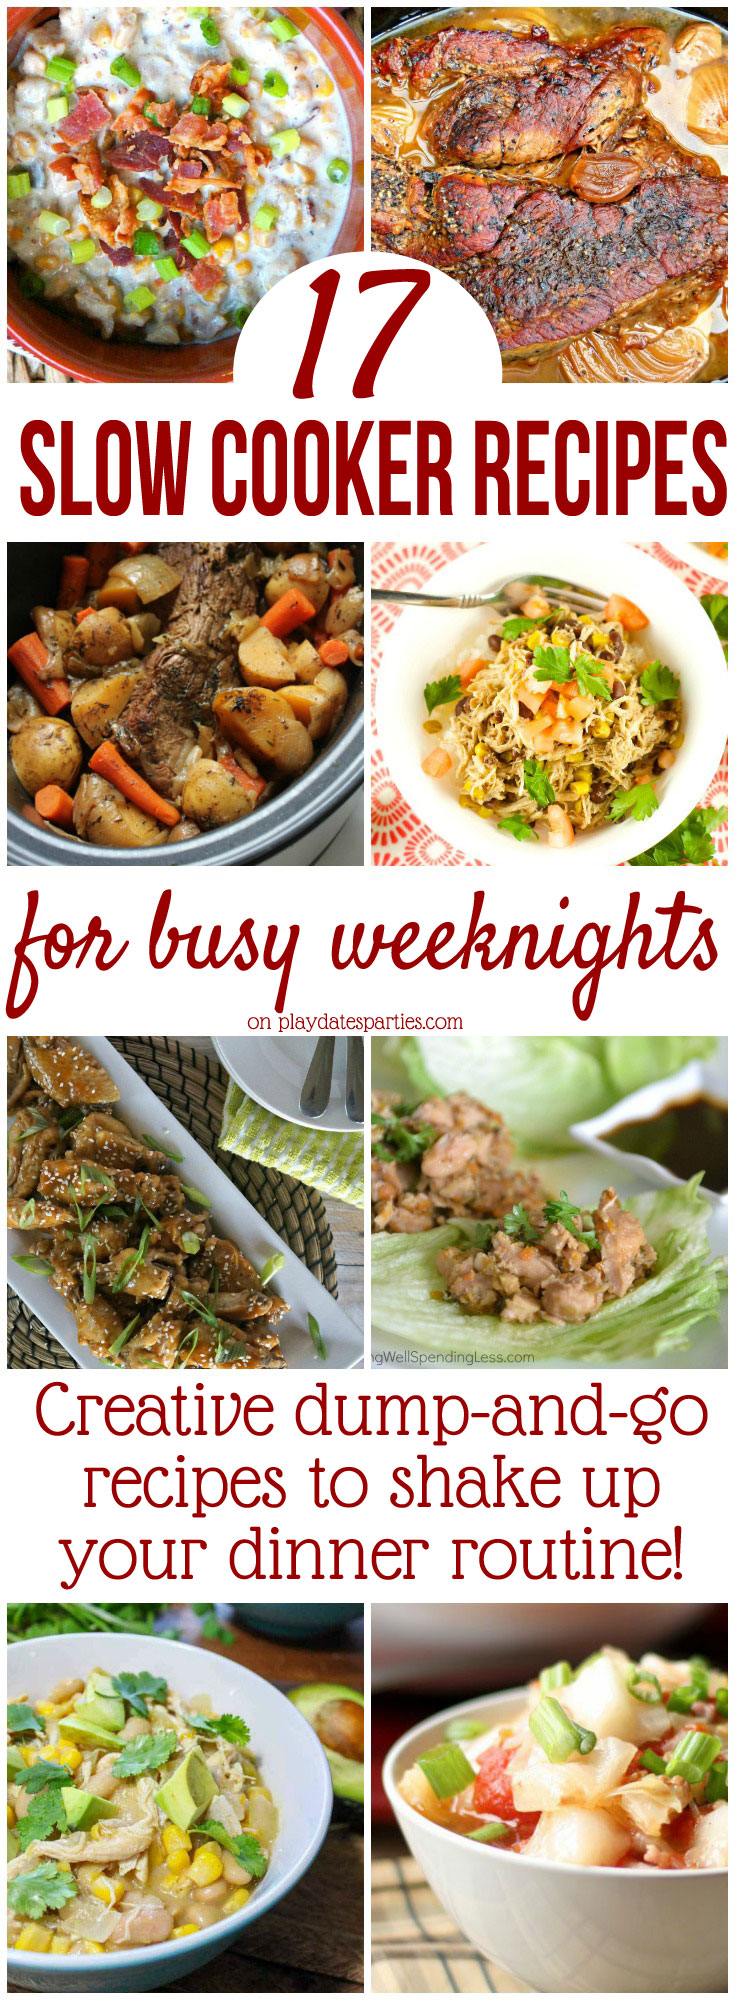 Slow cooker #recipes are one of the best ways to take the stress out of busy weeknights. But they don't have to be boring, either! These 17 crockpot recipes are easy to make and will add great variety to your weekly meal plan!